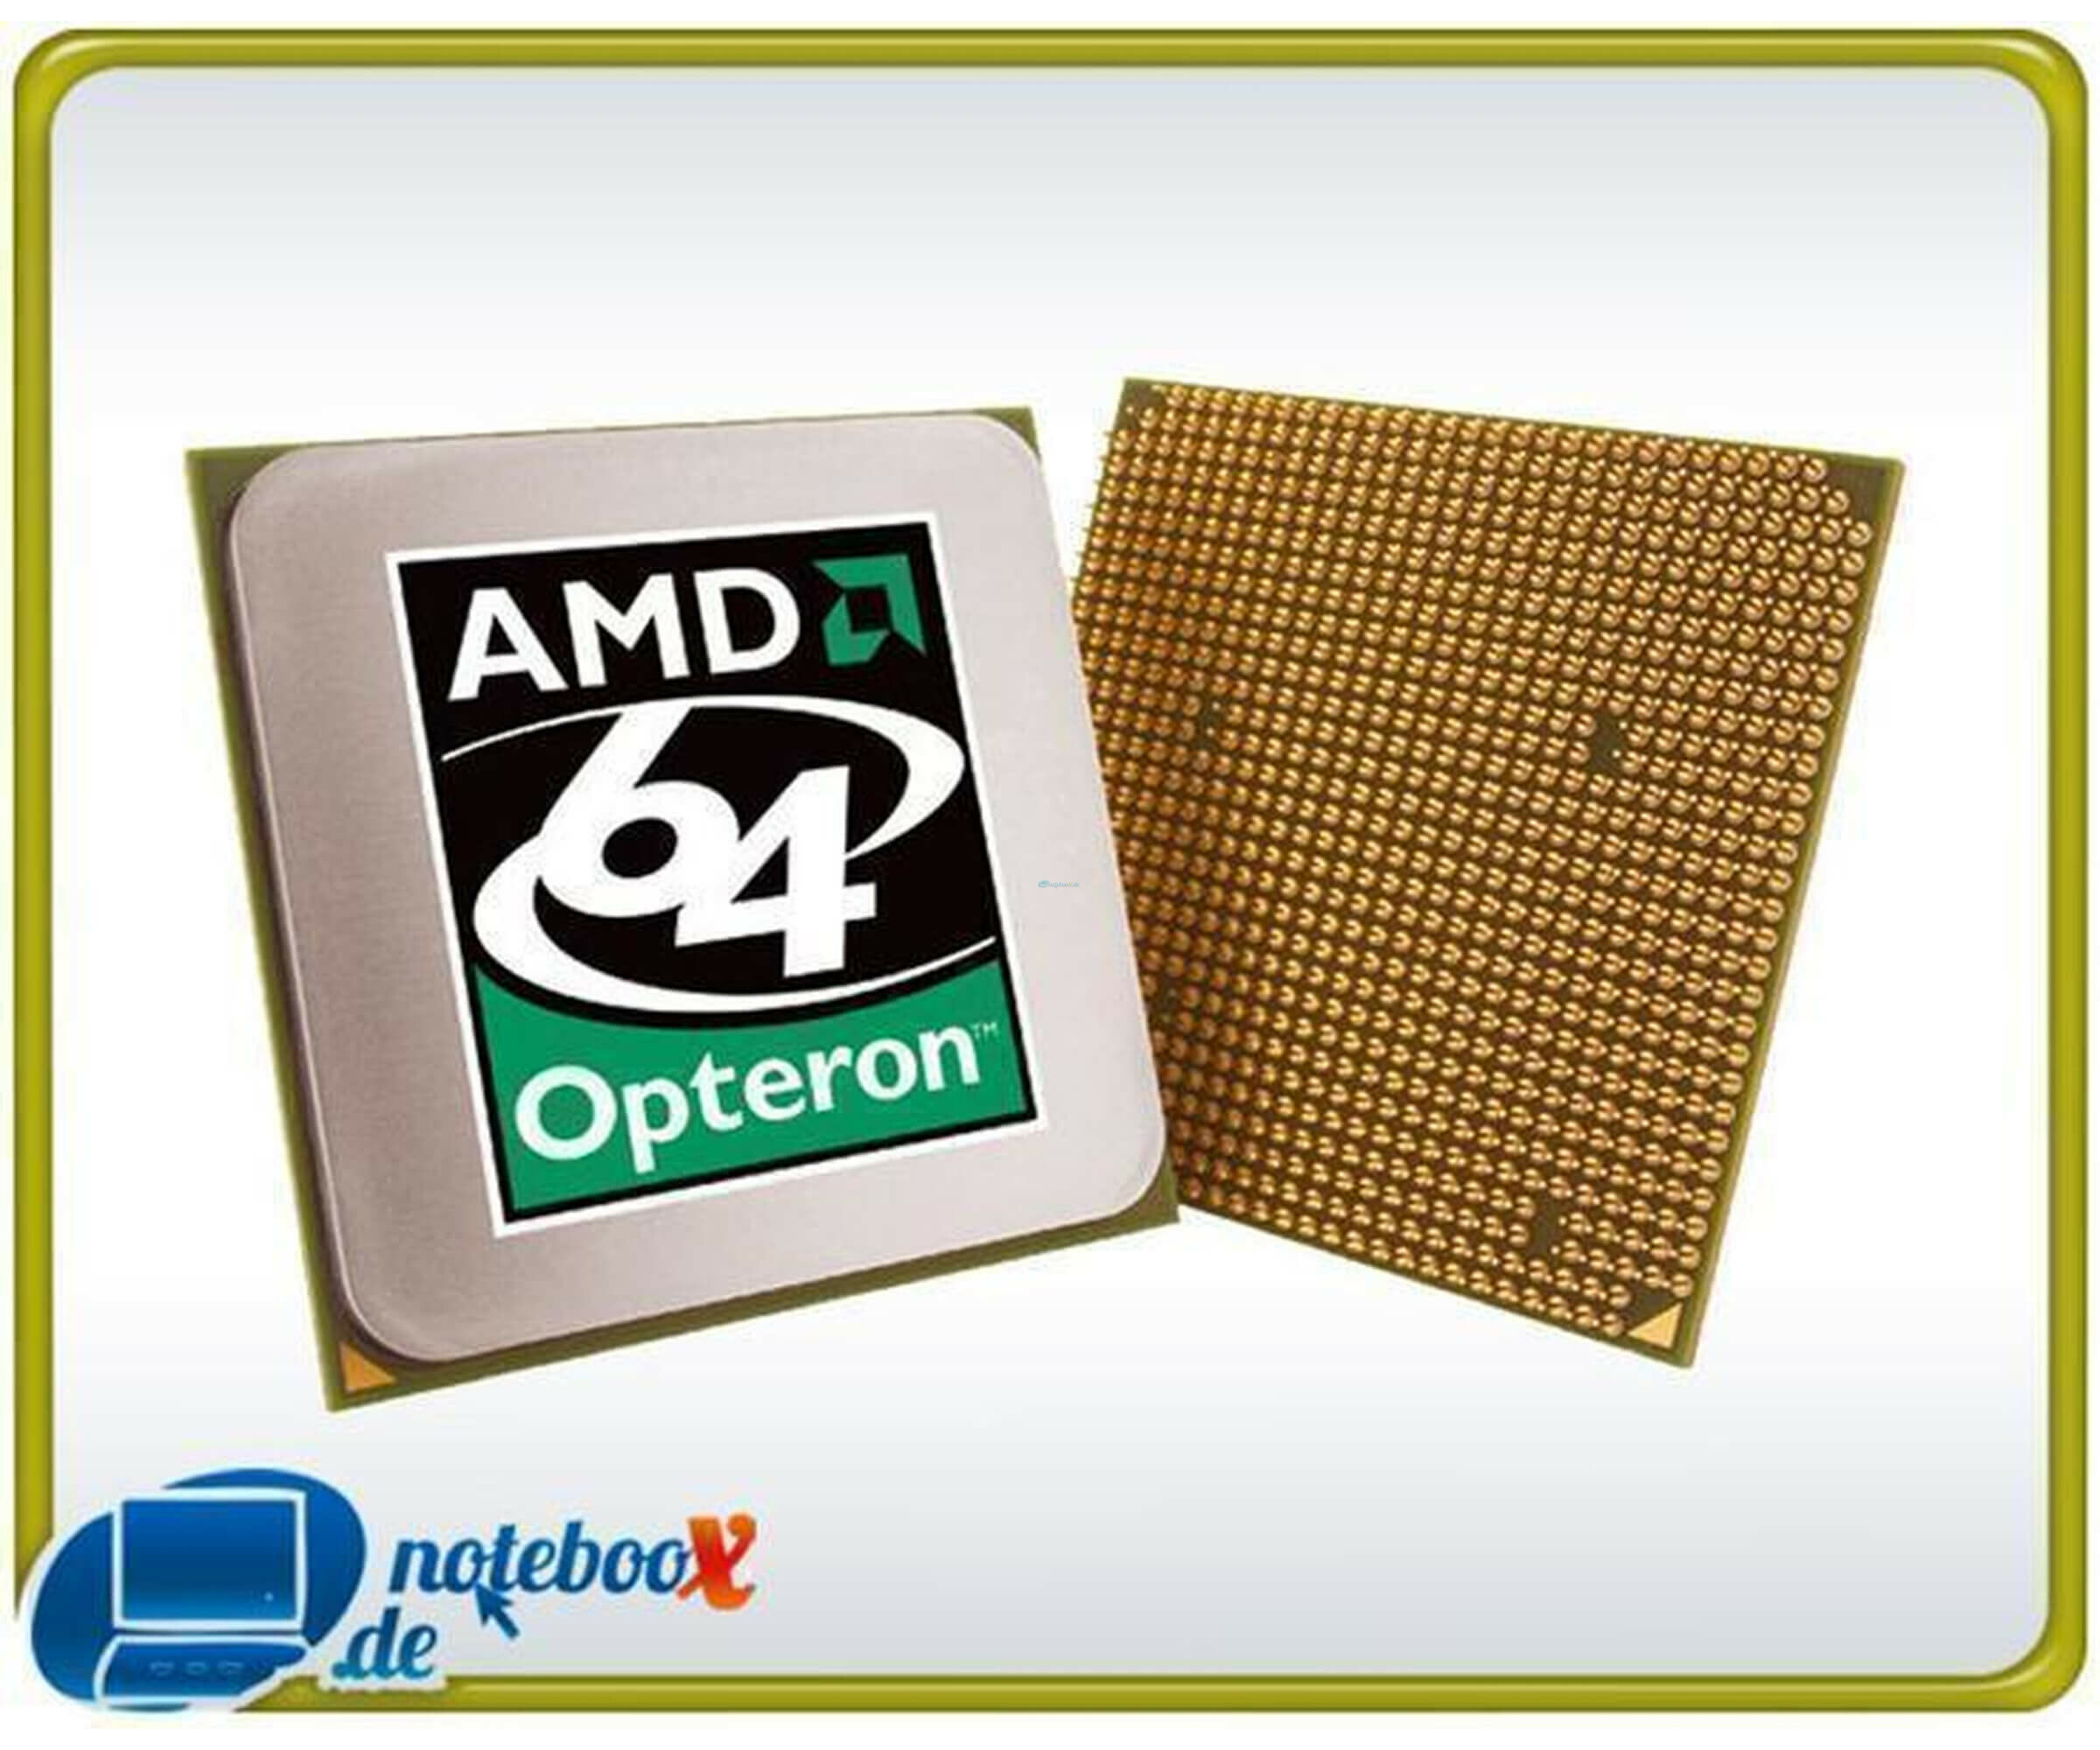 AMD Athlon II X2 250 - ADX2500CK23GM 3 GHz Prozessor - Socket AM3